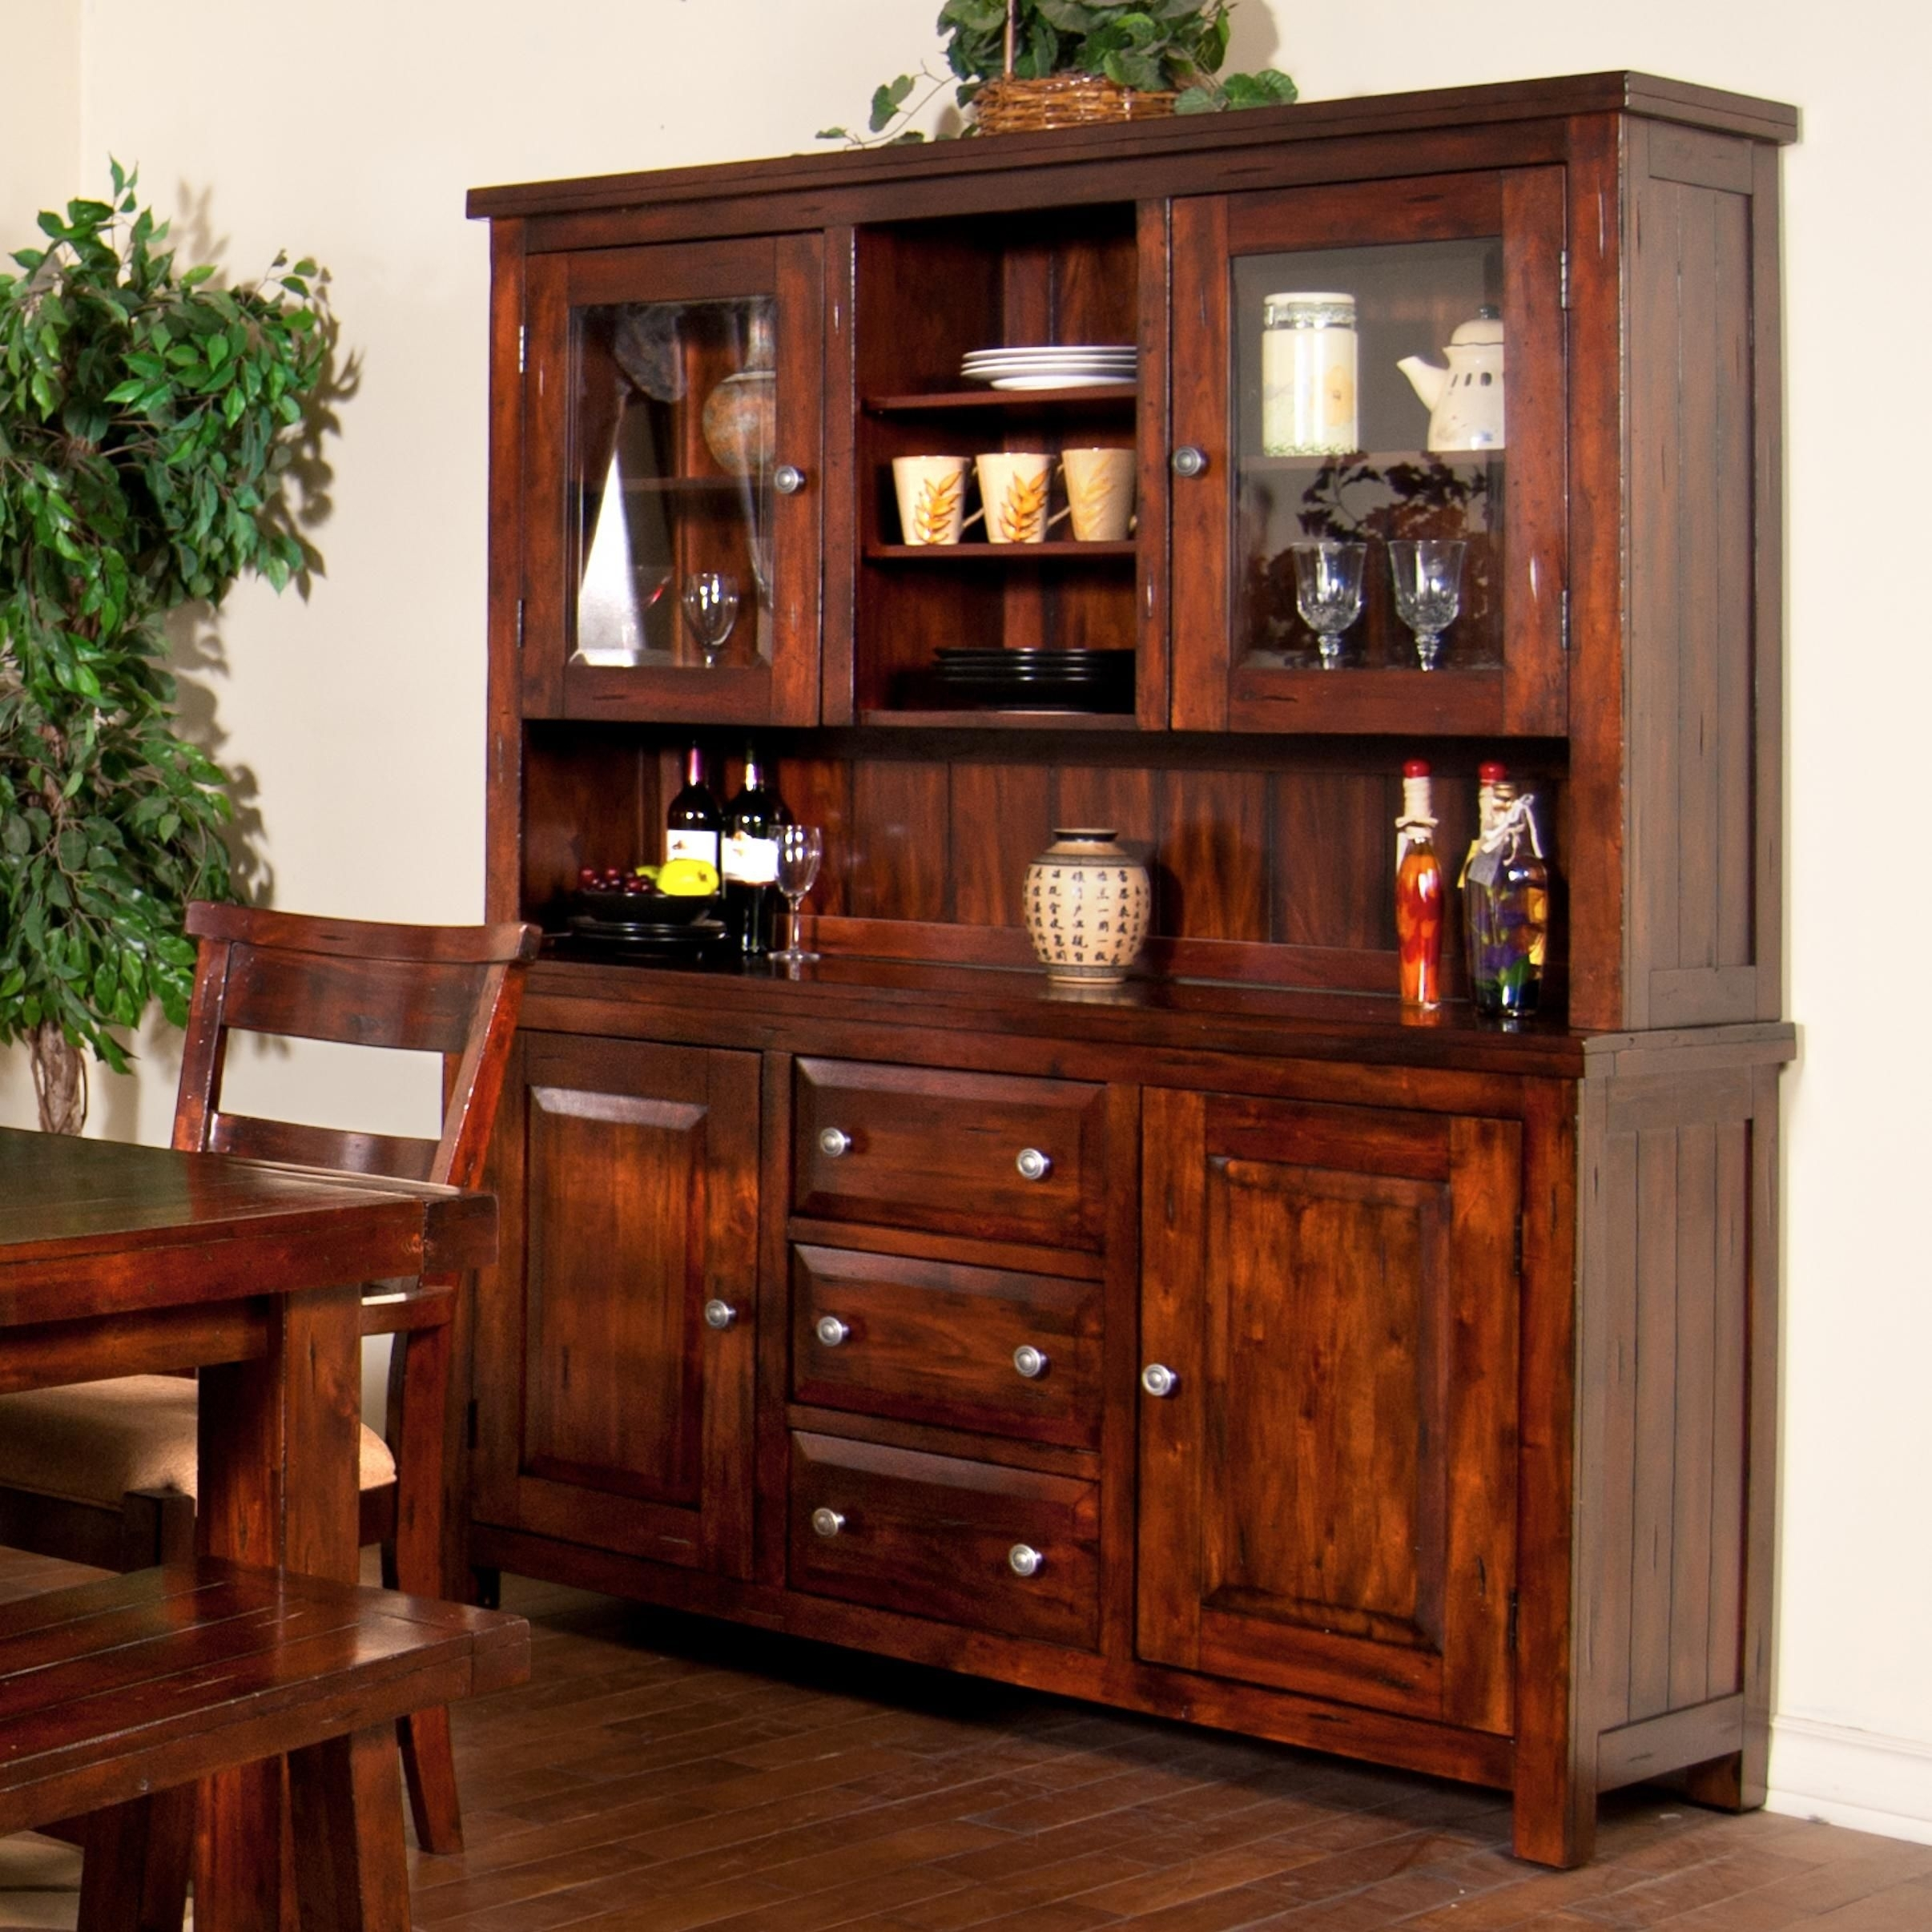 Home | Home Remodel | Pinterest | China Cabinets, China And Buffet inside Natural Oak Wood 78 Inch Sideboards (Image 8 of 30)